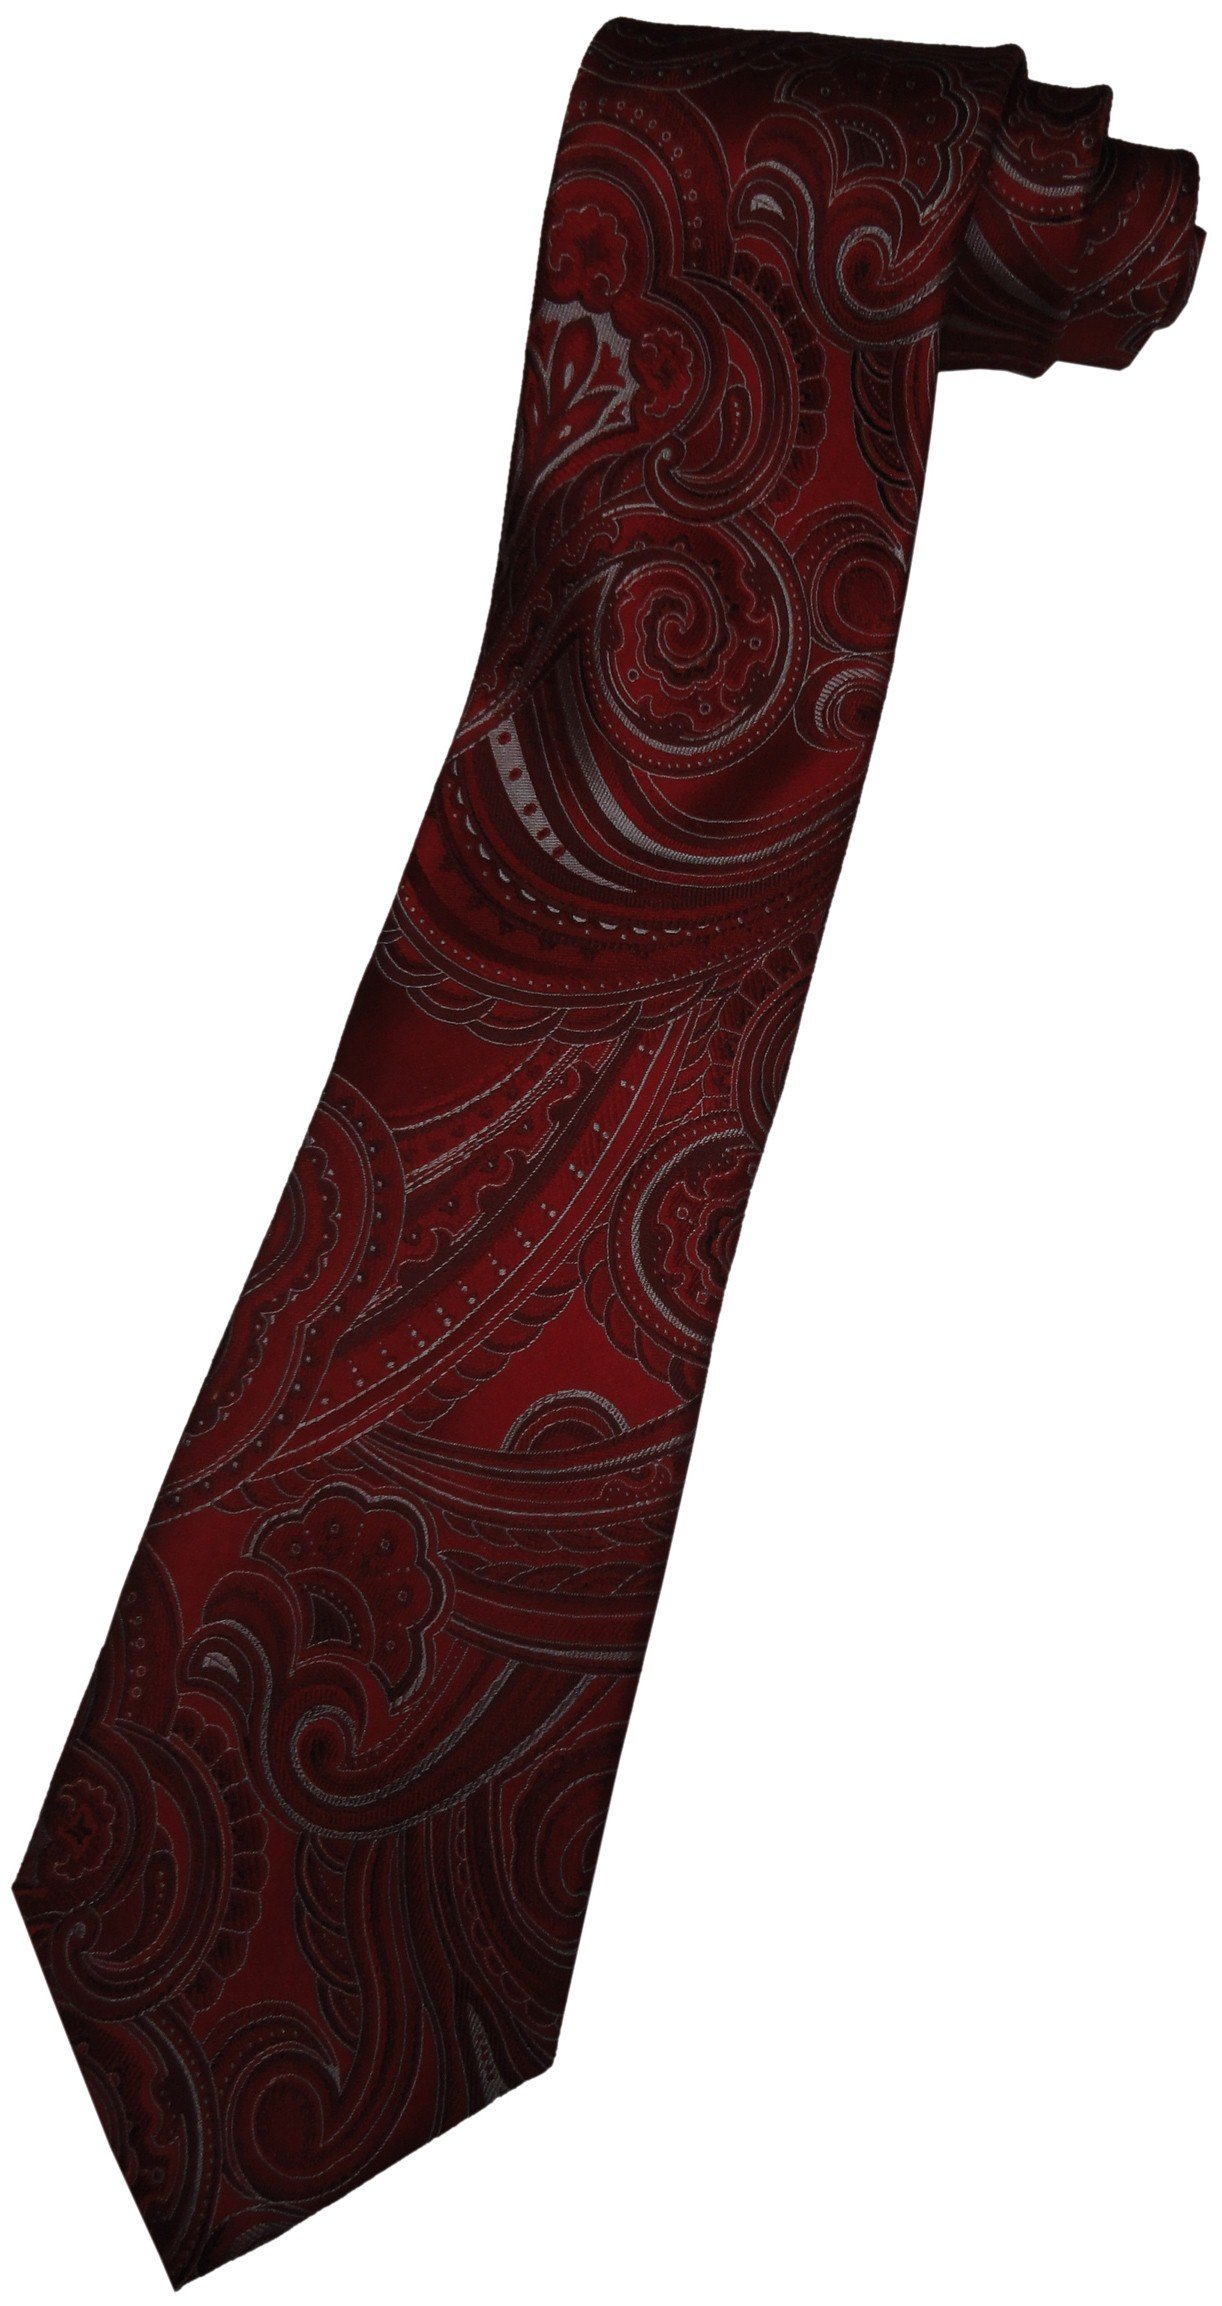 Donald Trump Signature Collection Neck Tie Red Paisley by Donald Trump